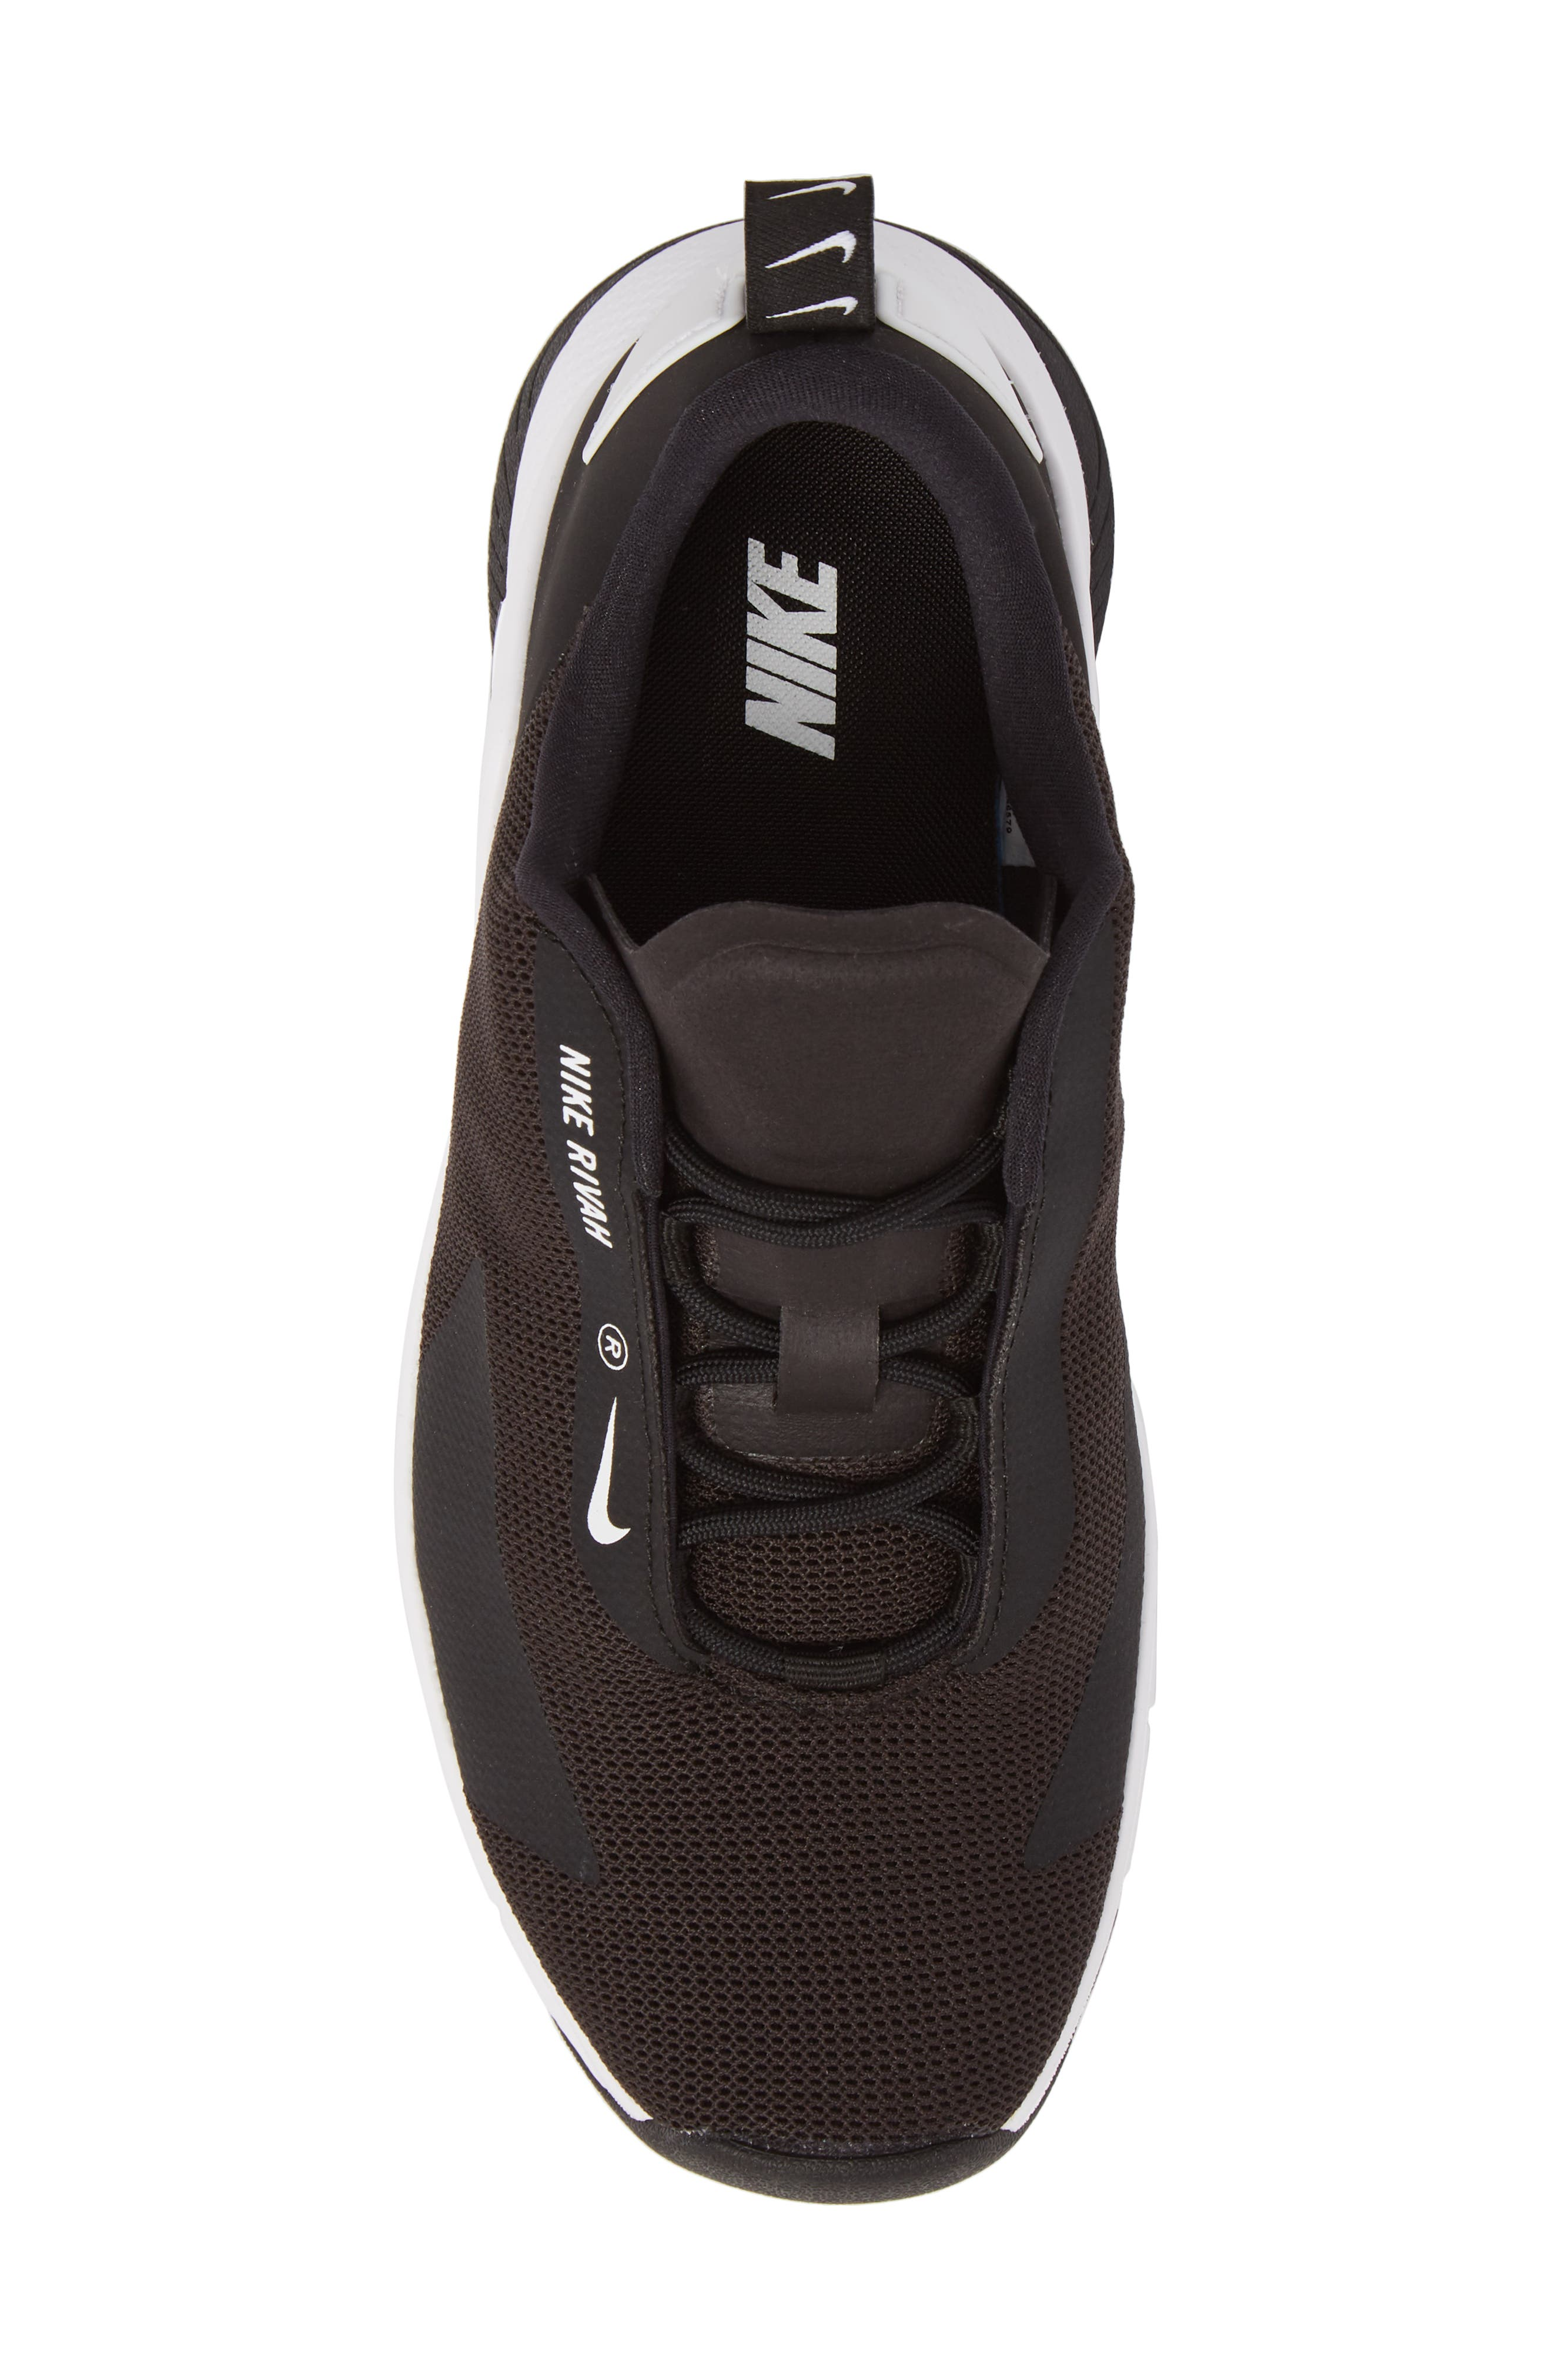 Rivah Sneaker,                             Alternate thumbnail 5, color,                             Black/ Black/ White